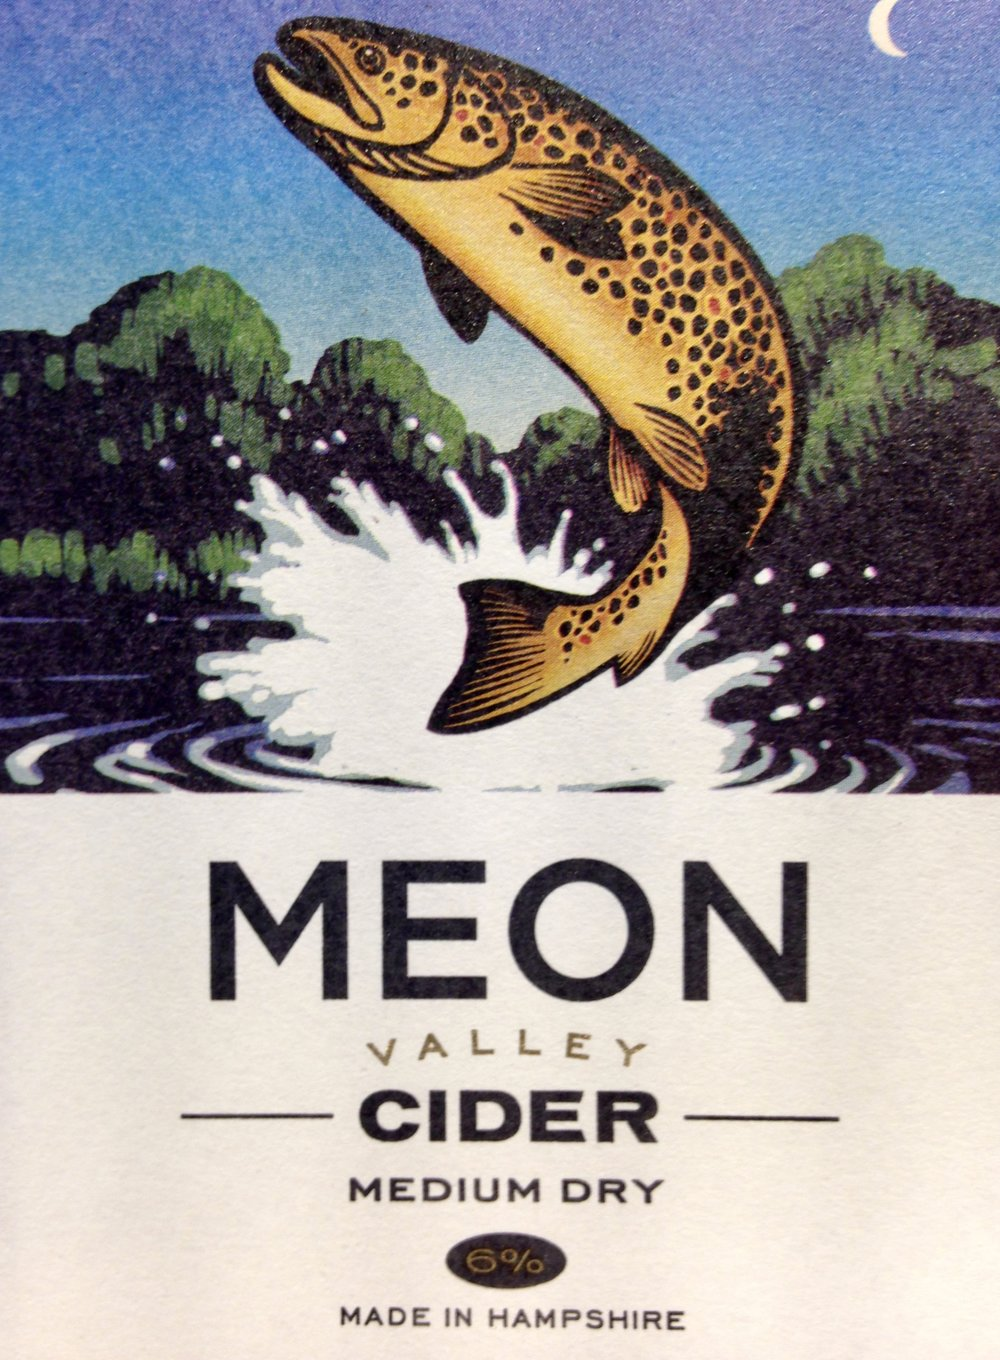 Brown Trout - 6% ABV Medium DryAmber cider cider lightly oaked with vanilla, kiwi fruit, and caramel notes. Good with stilton cheese and desserts. Using local Hampshire and Sussex dessert apples together with bittersweeets from the West CountryJoint-second Cider of the Festival CAMRA Southampton 2018Bottles Available, BIB available end Nov 2018:Sparkling in 500ml bottles (Cases of 12)Still in 20 Litre Bag in Boxes